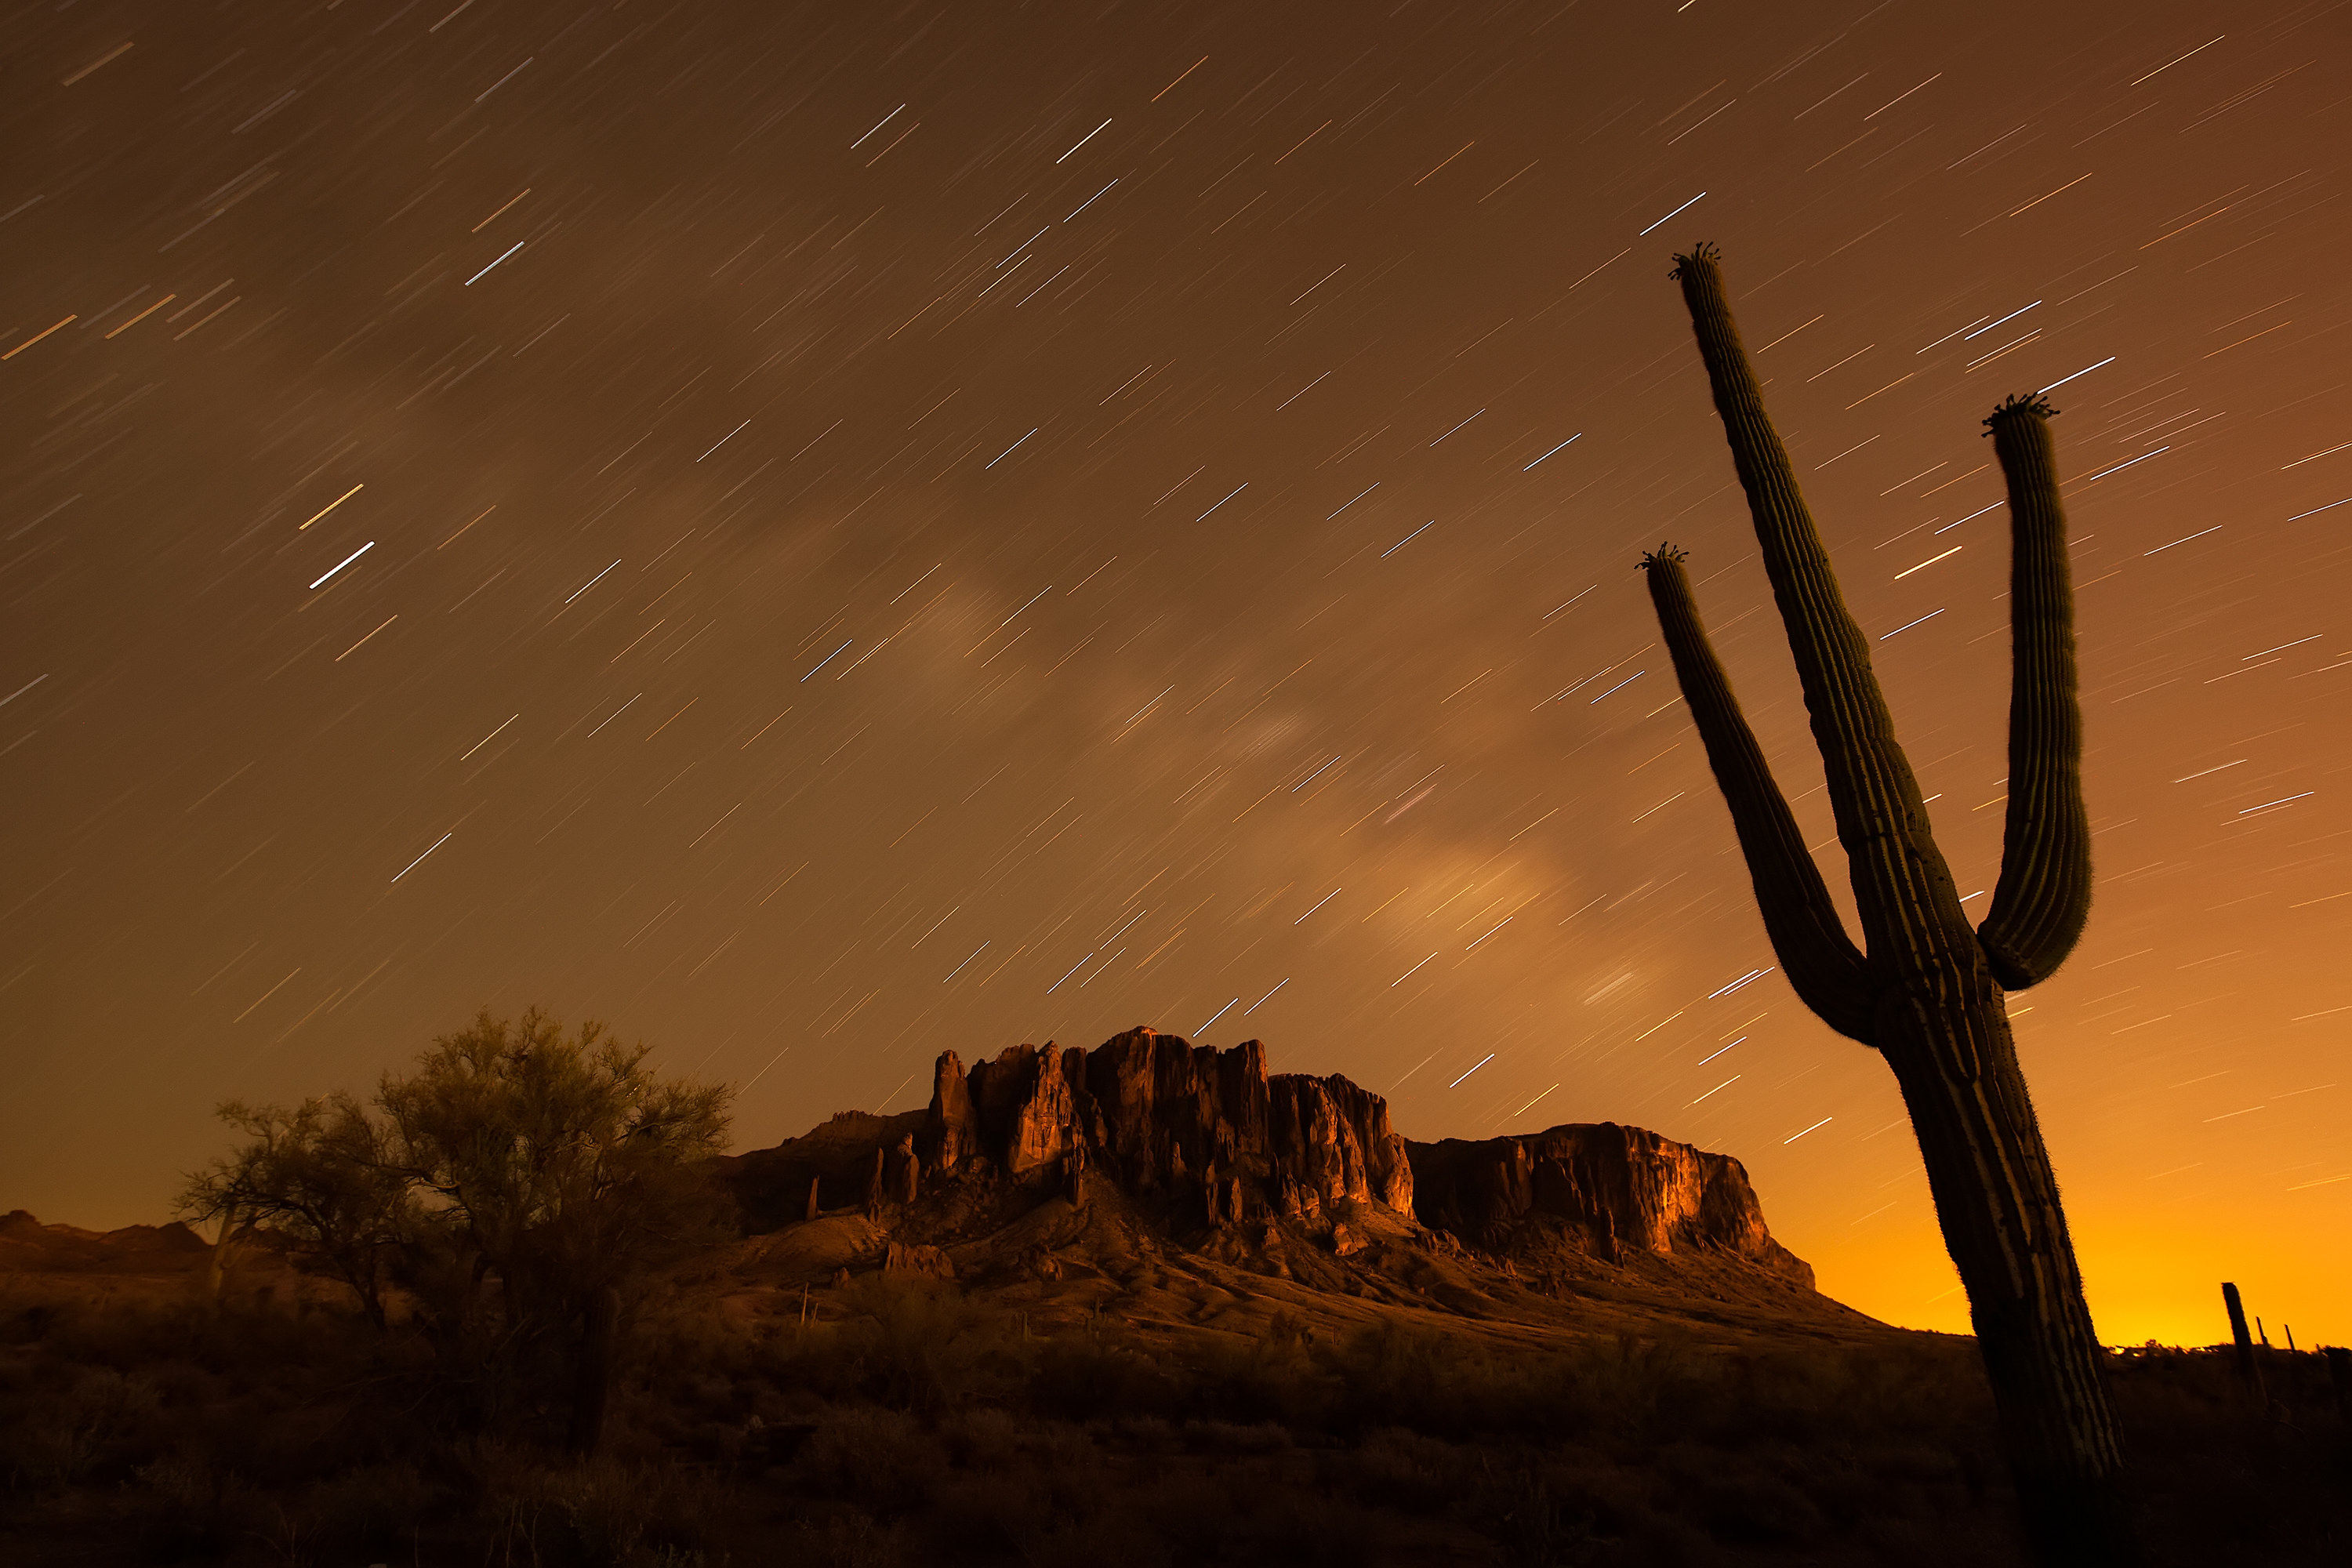 a cactus in the foreground with blurry star trails and the Superstition Mountains in the background, in Lost Dutchman State Park